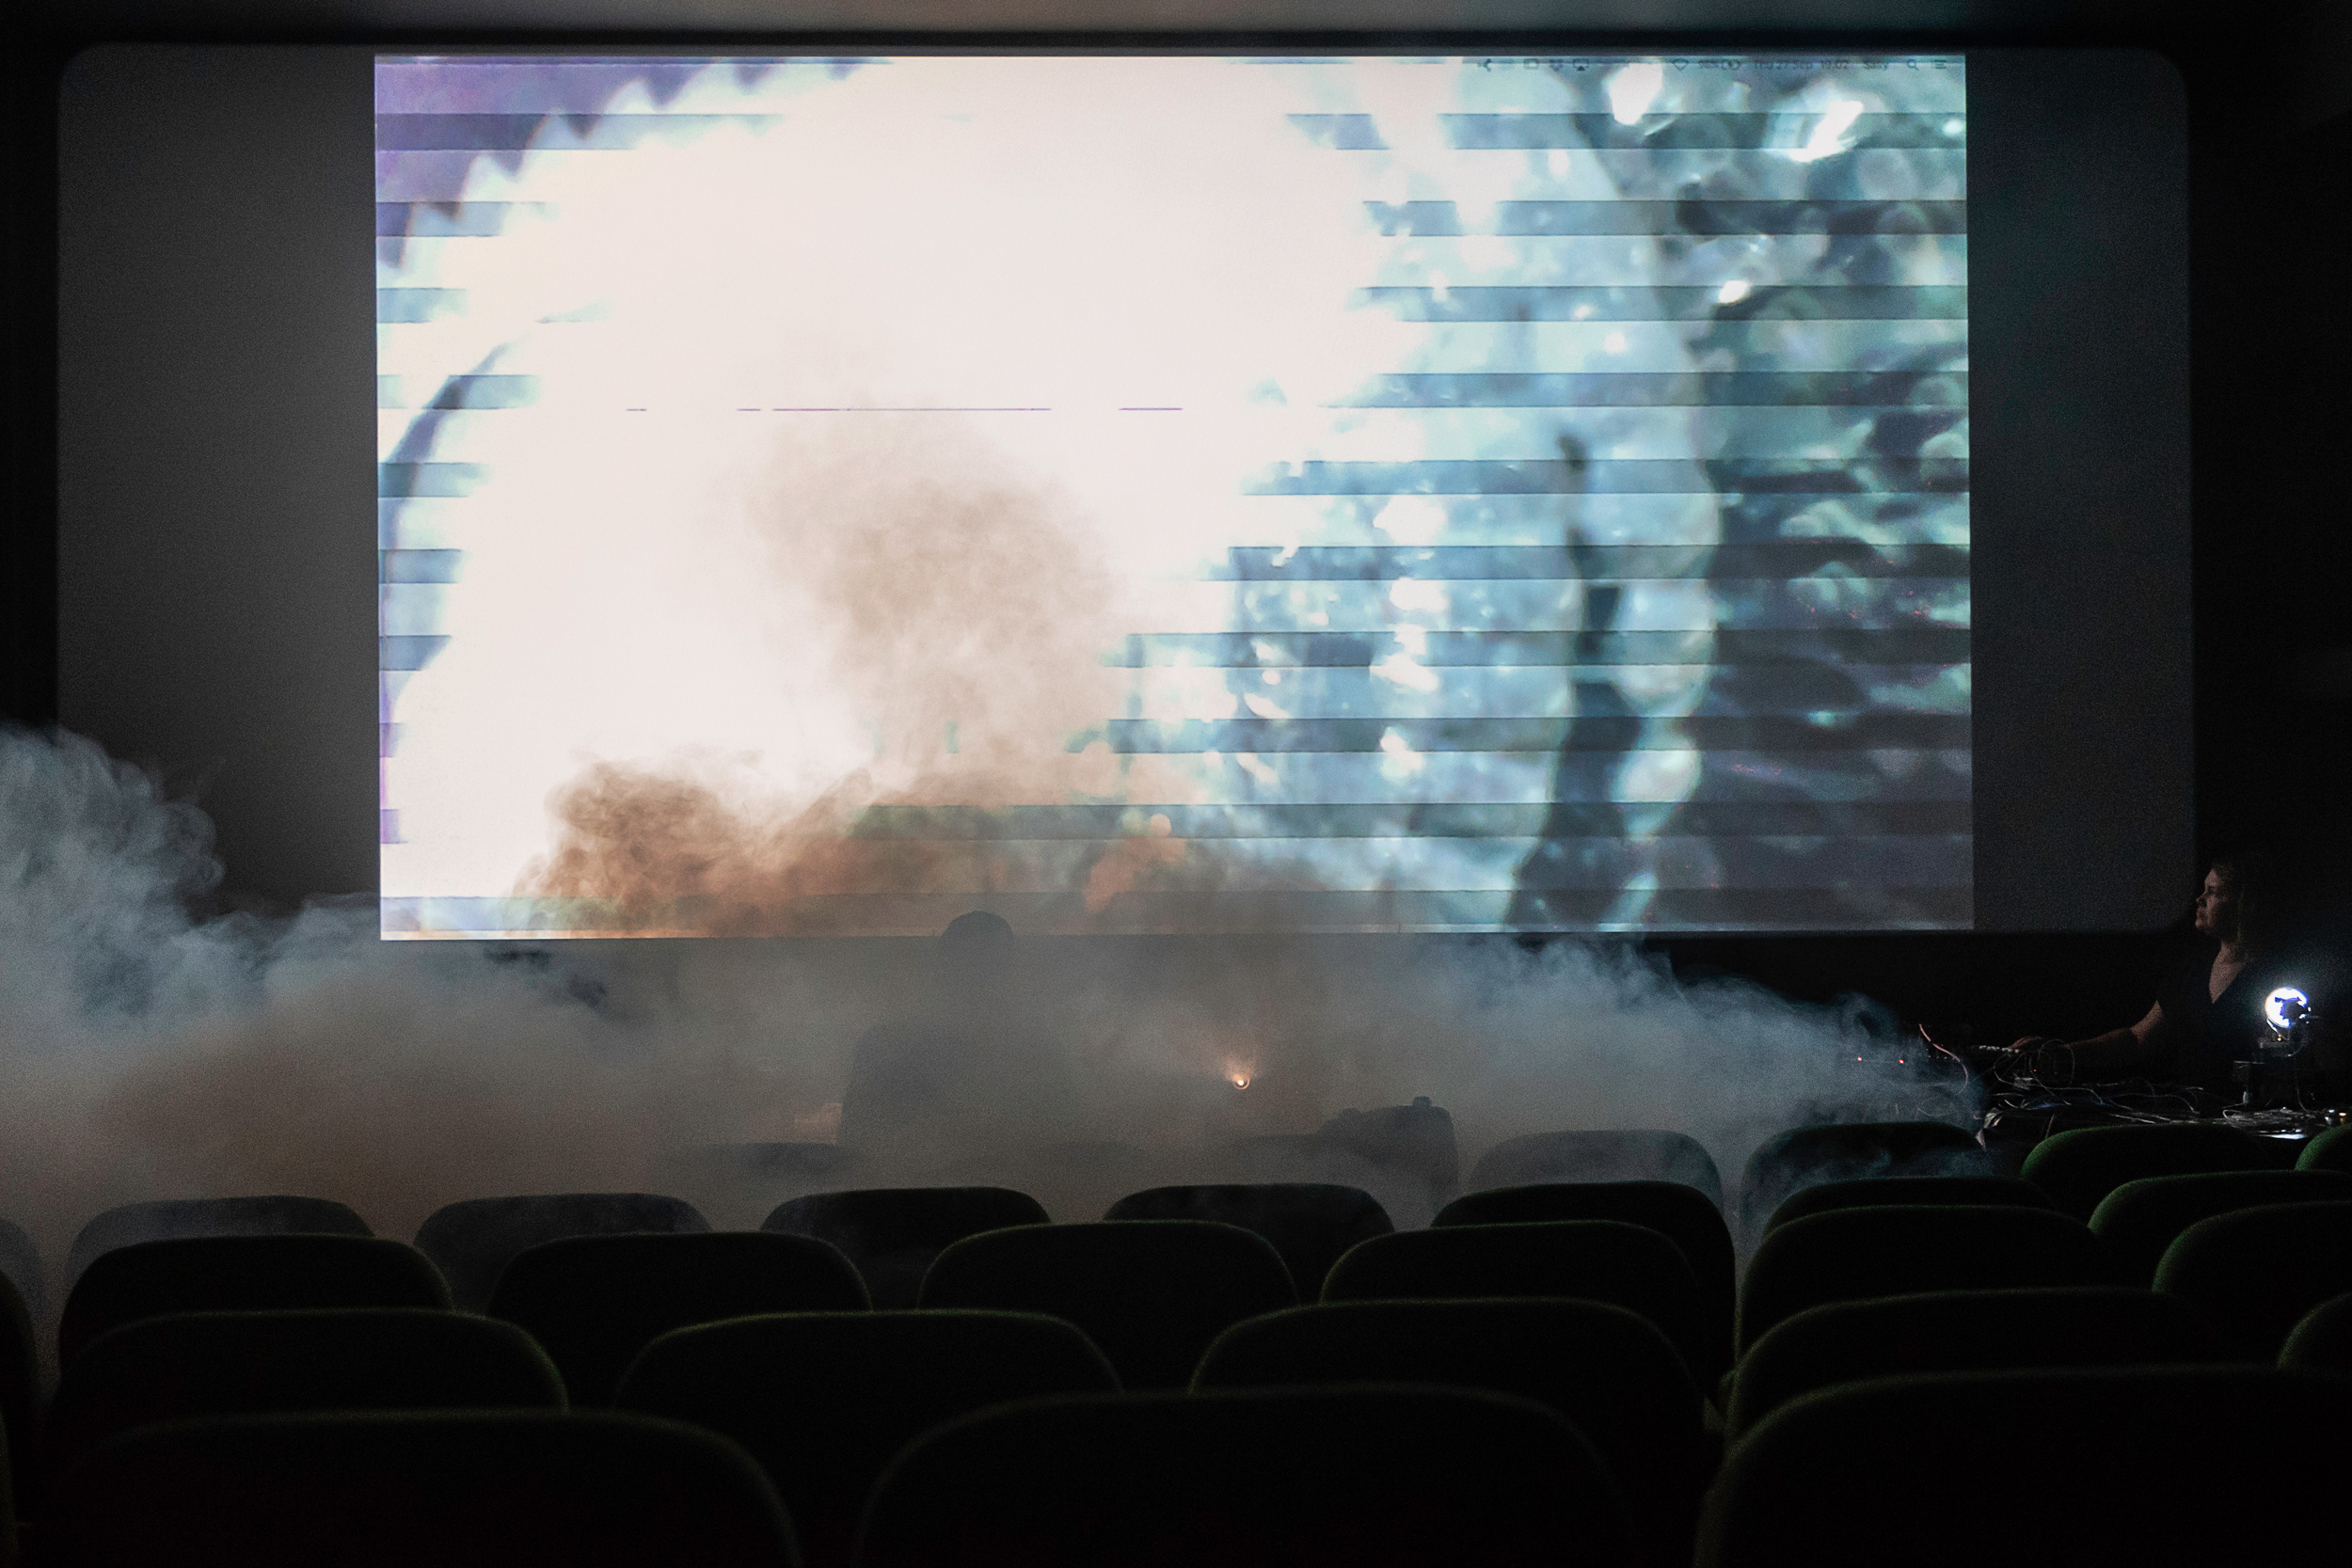 Decompression - Spatial-Golding present an immersive space situated between cinema and club. Specially made for a re-invented cinema context.